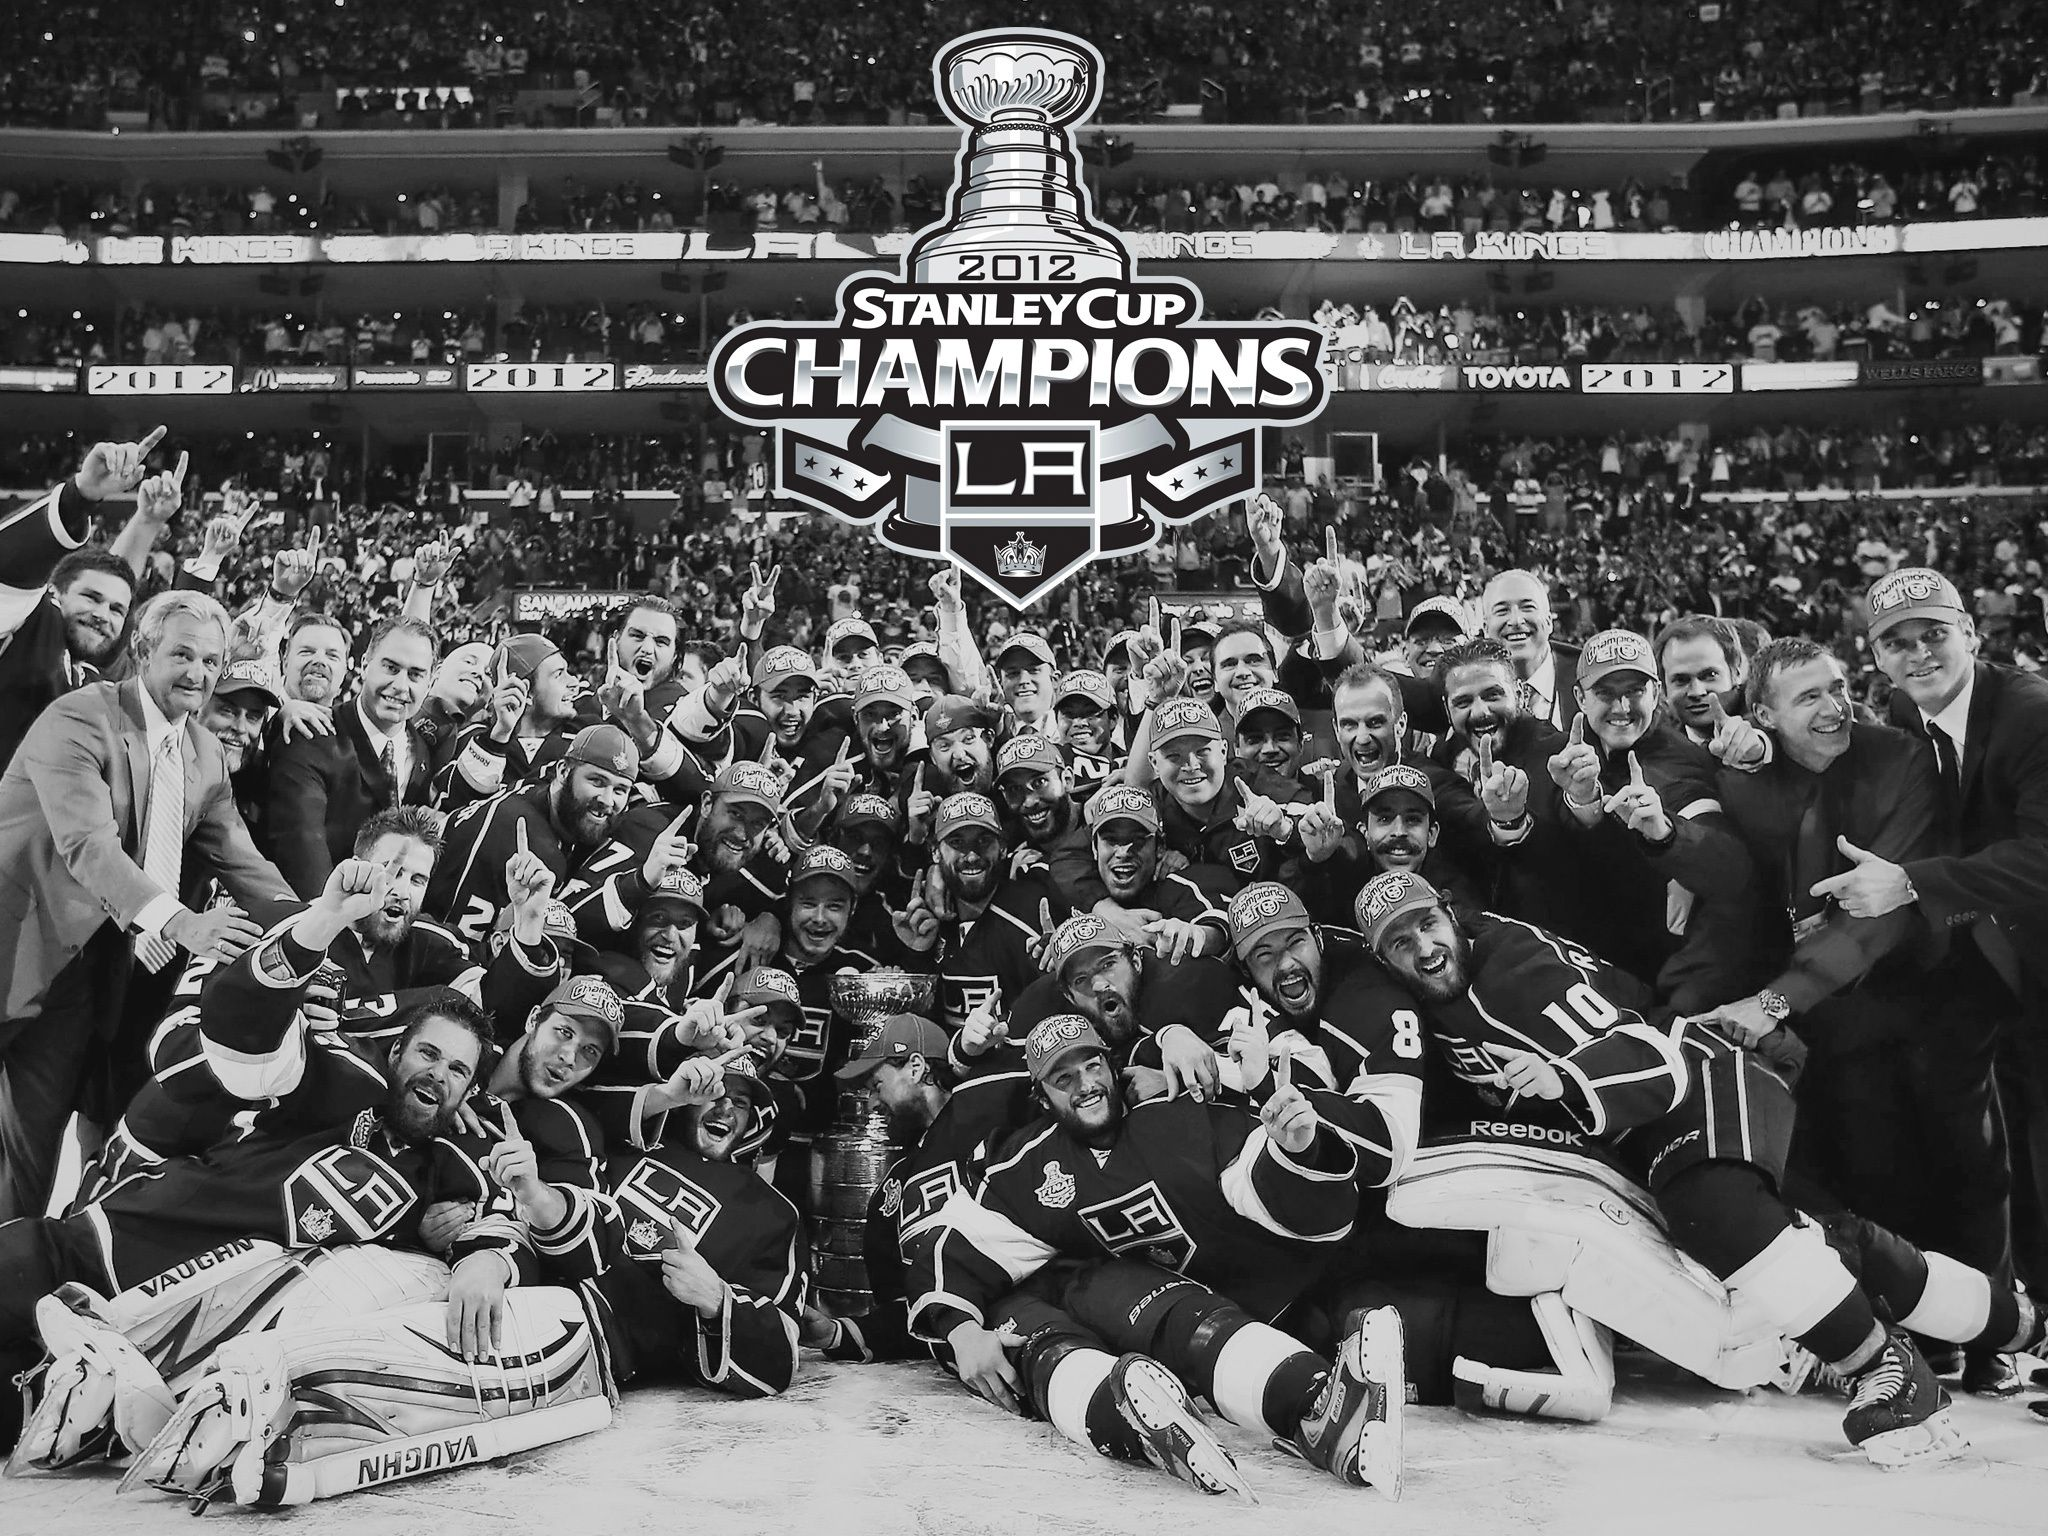 eac022d6 LA Kings Wallpaper for your iPad La Kings Stanley Cup, Stanley Cup  Champions, Hockey